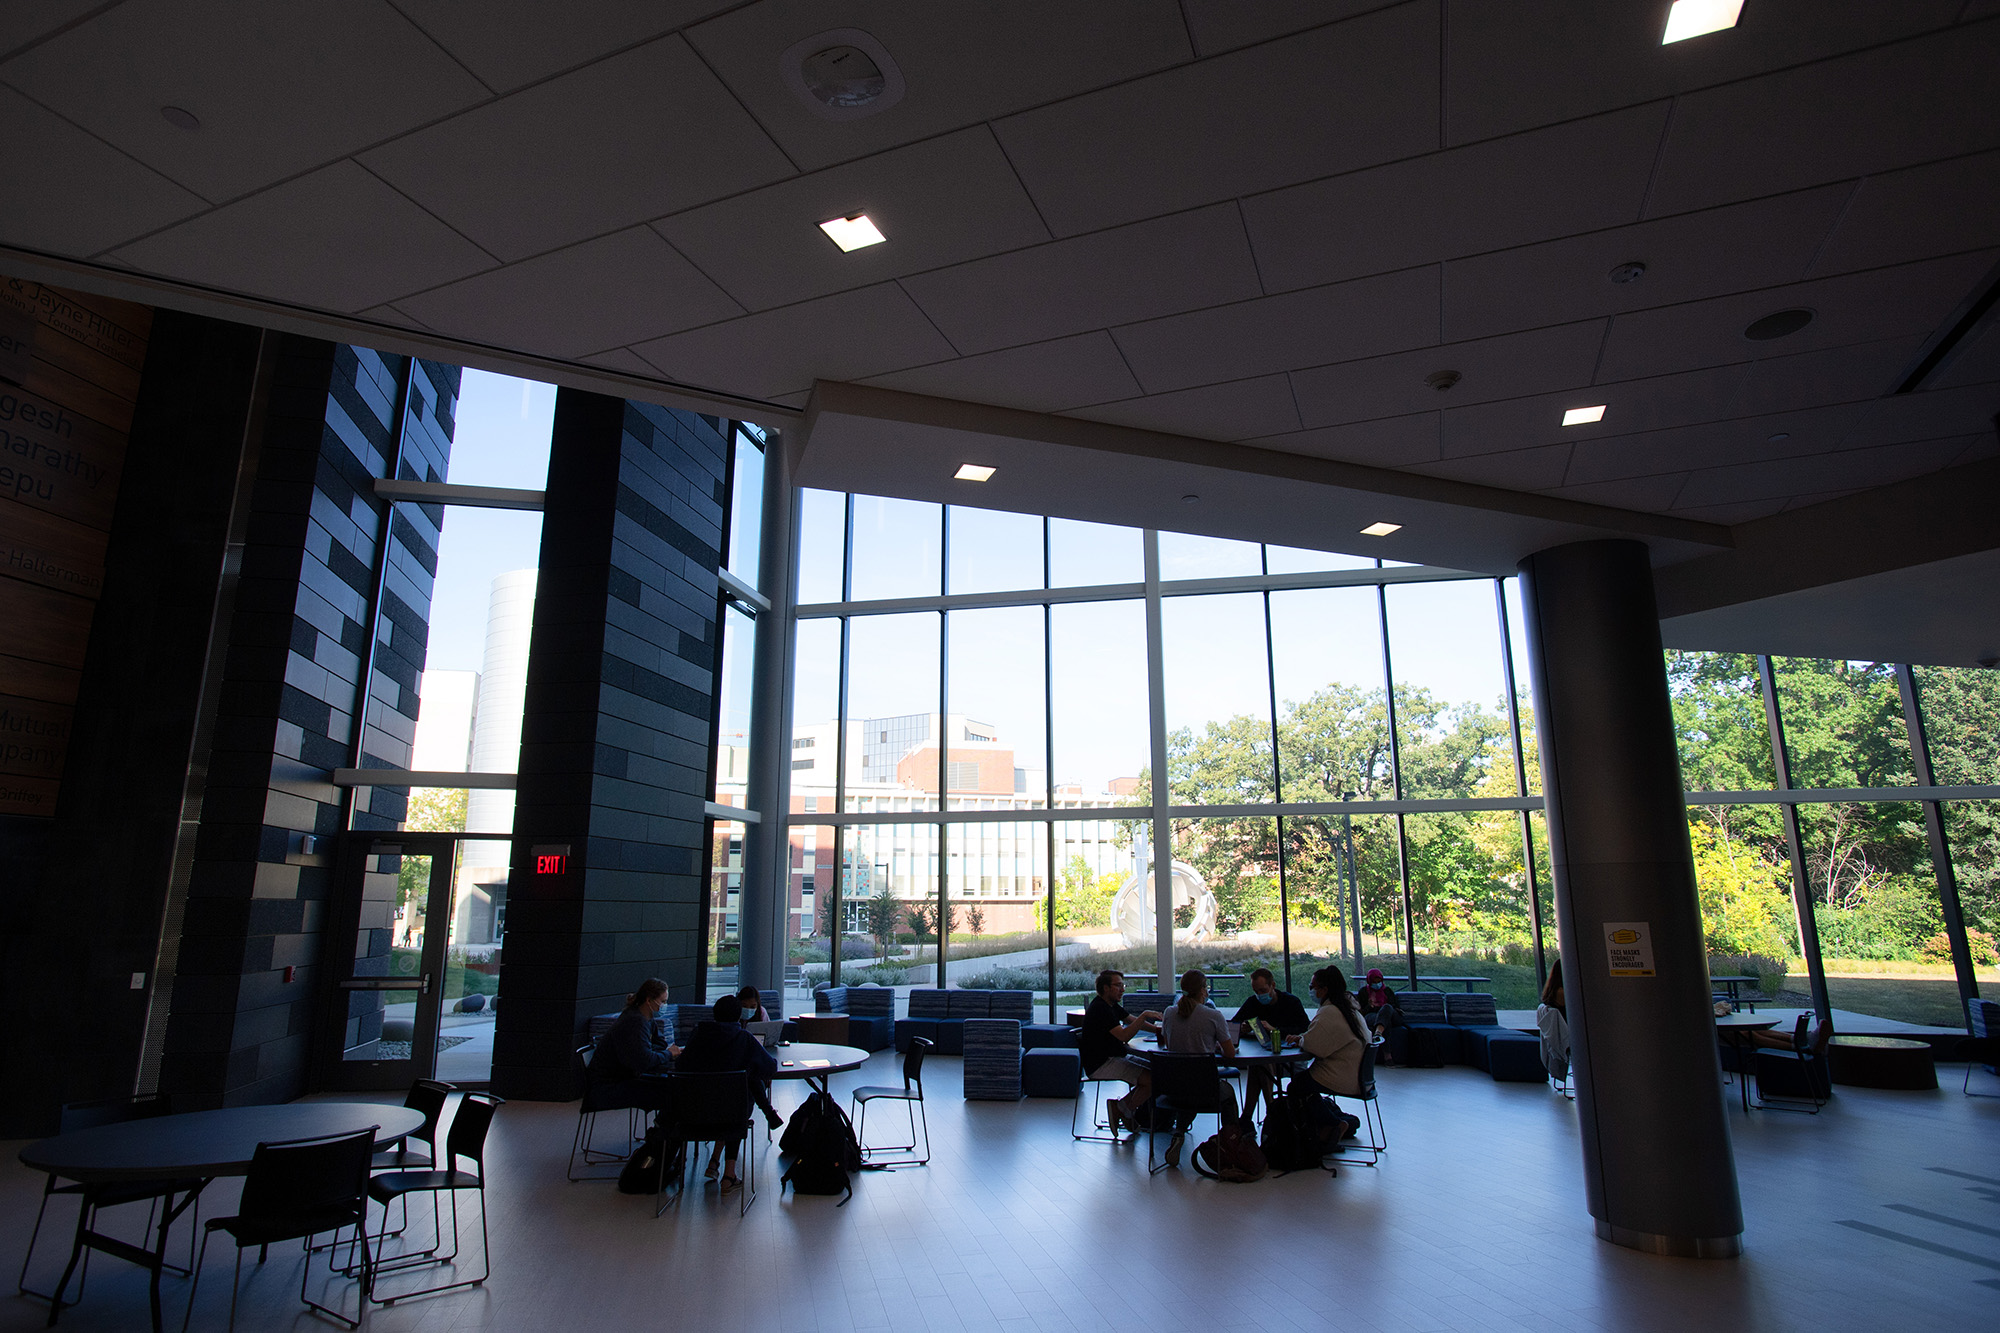 interior shot from the University of Iowa College of Pharmacy Building. People sit throughout the room; a large wall of windows shows buildings outside